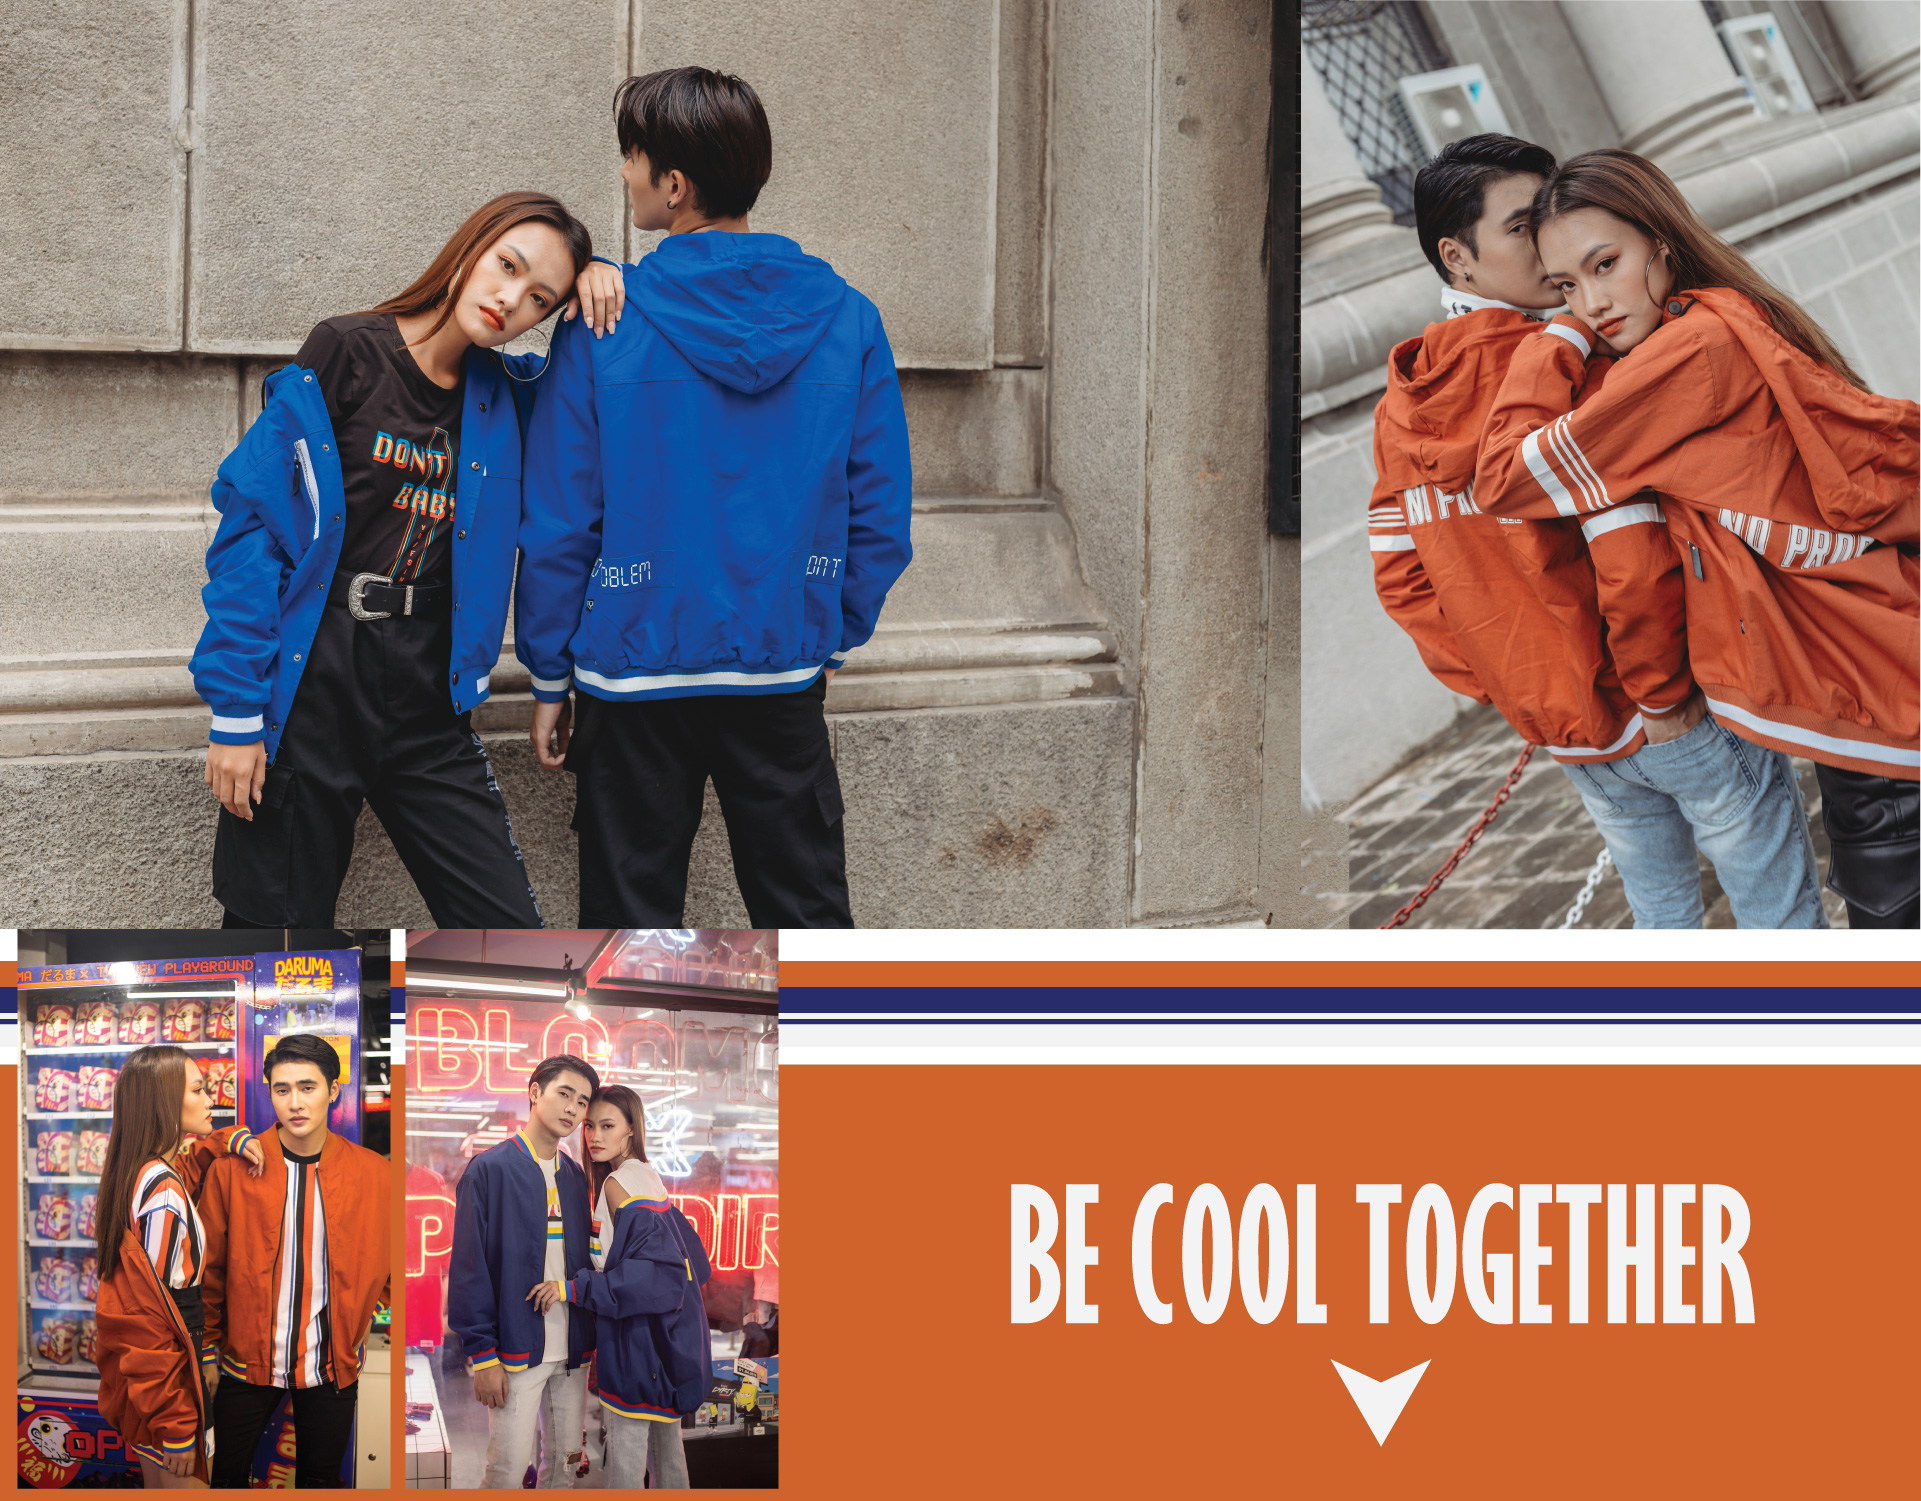 BE COOL TOGETHER